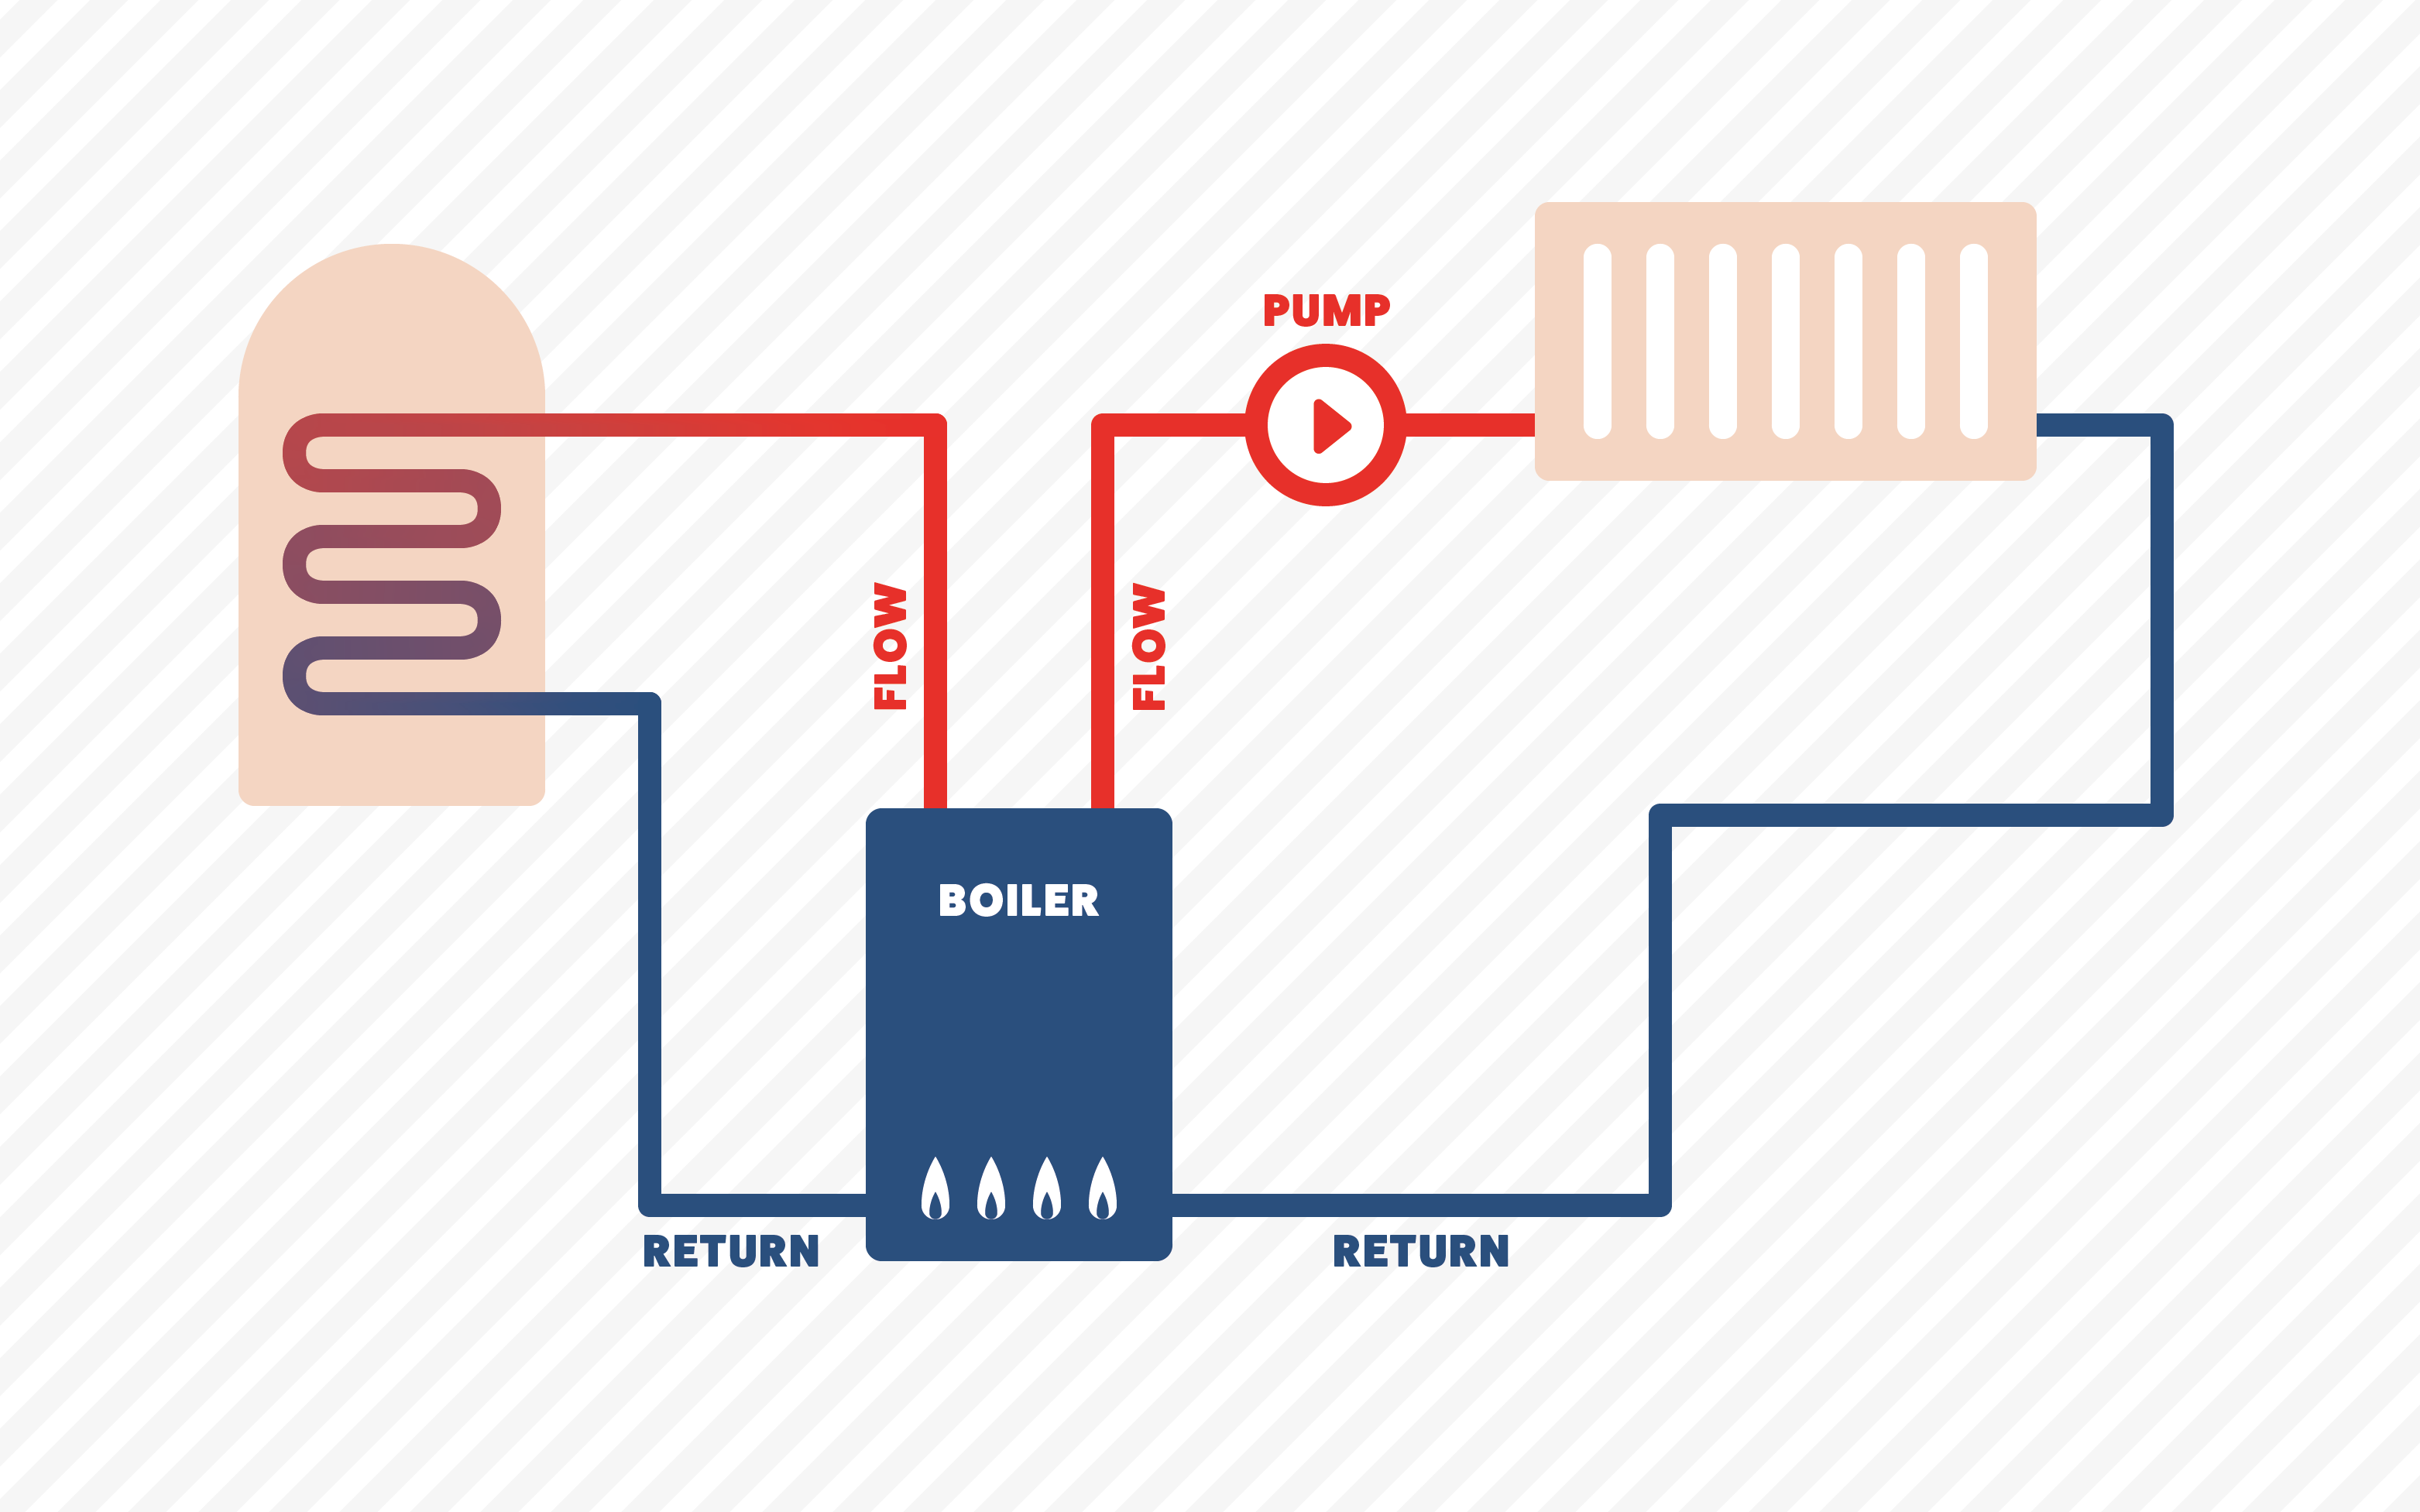 diagram showing the placement of a central heating pump in a central heating system